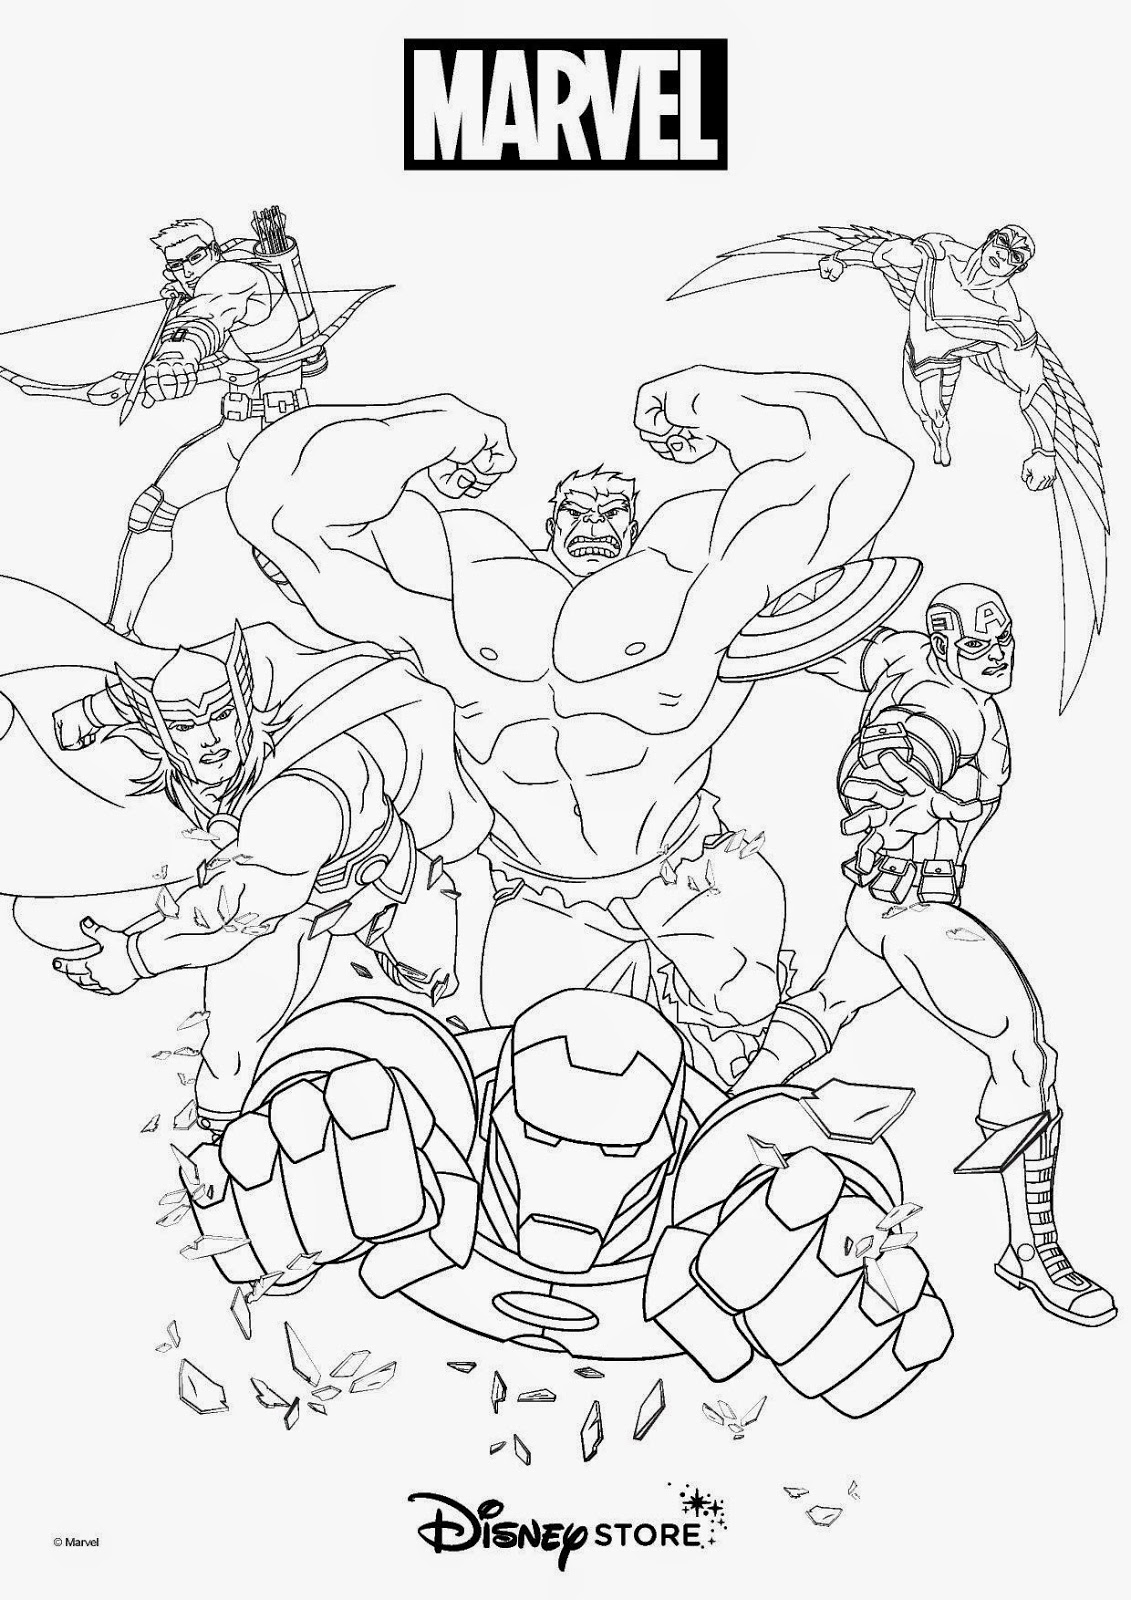 Coloring Pages Of Marvel Avengers : Pin marvel avengers colouring pages on pinterest